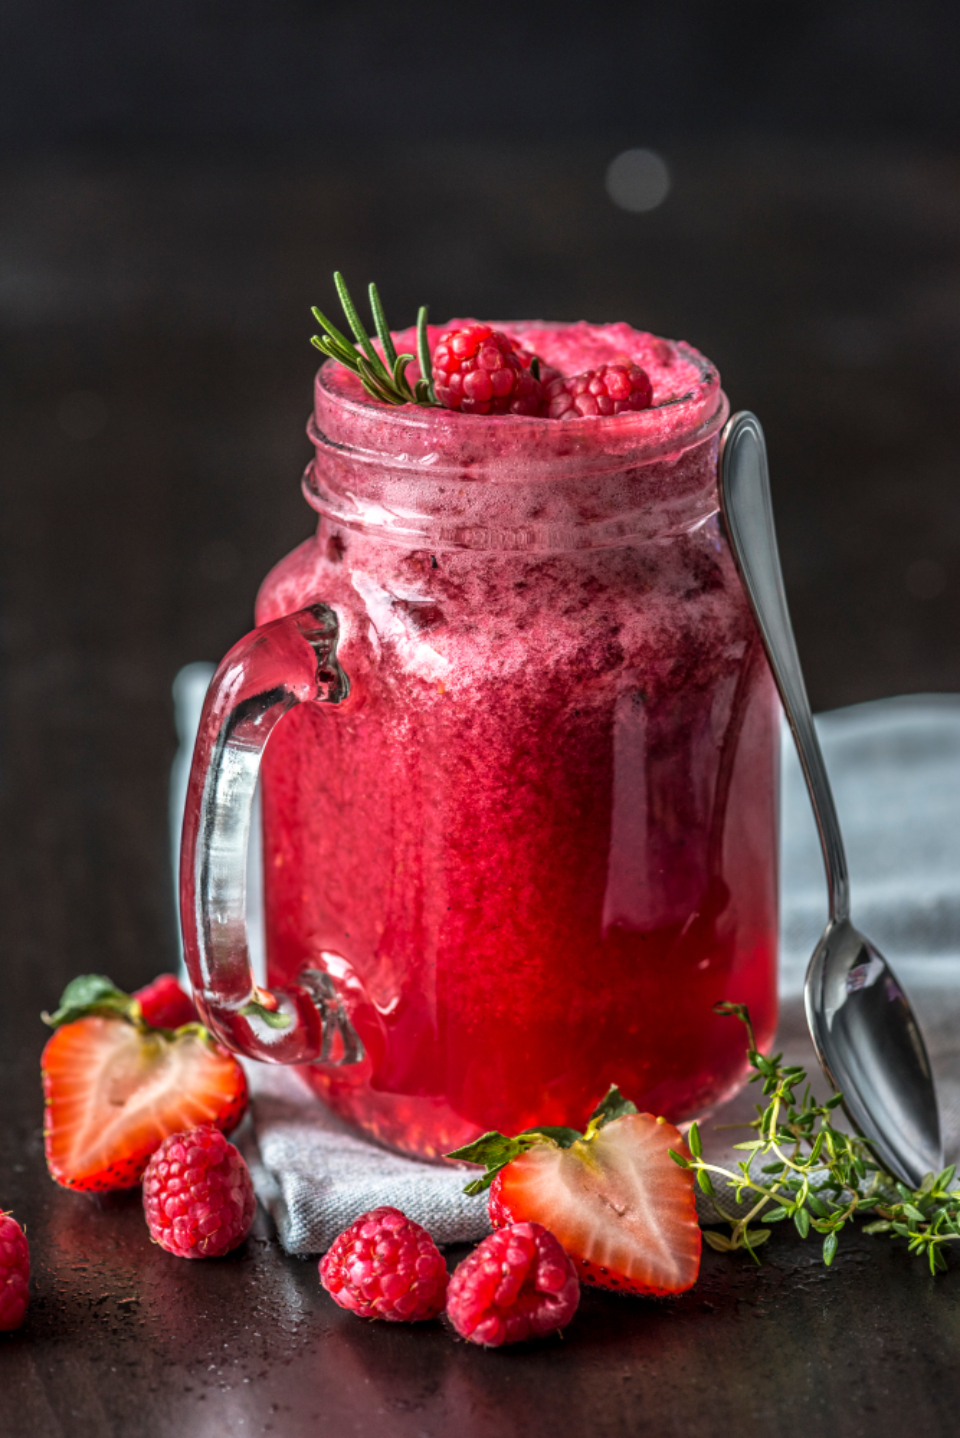 berry beverage closeup cold cool drink drinking food food photography frappe fresh freshness fruit glass healthcare healthy herbs juice macro menu mixed berry natural nutrients nutritious organic recipe red refreshing refreshment rosemarry